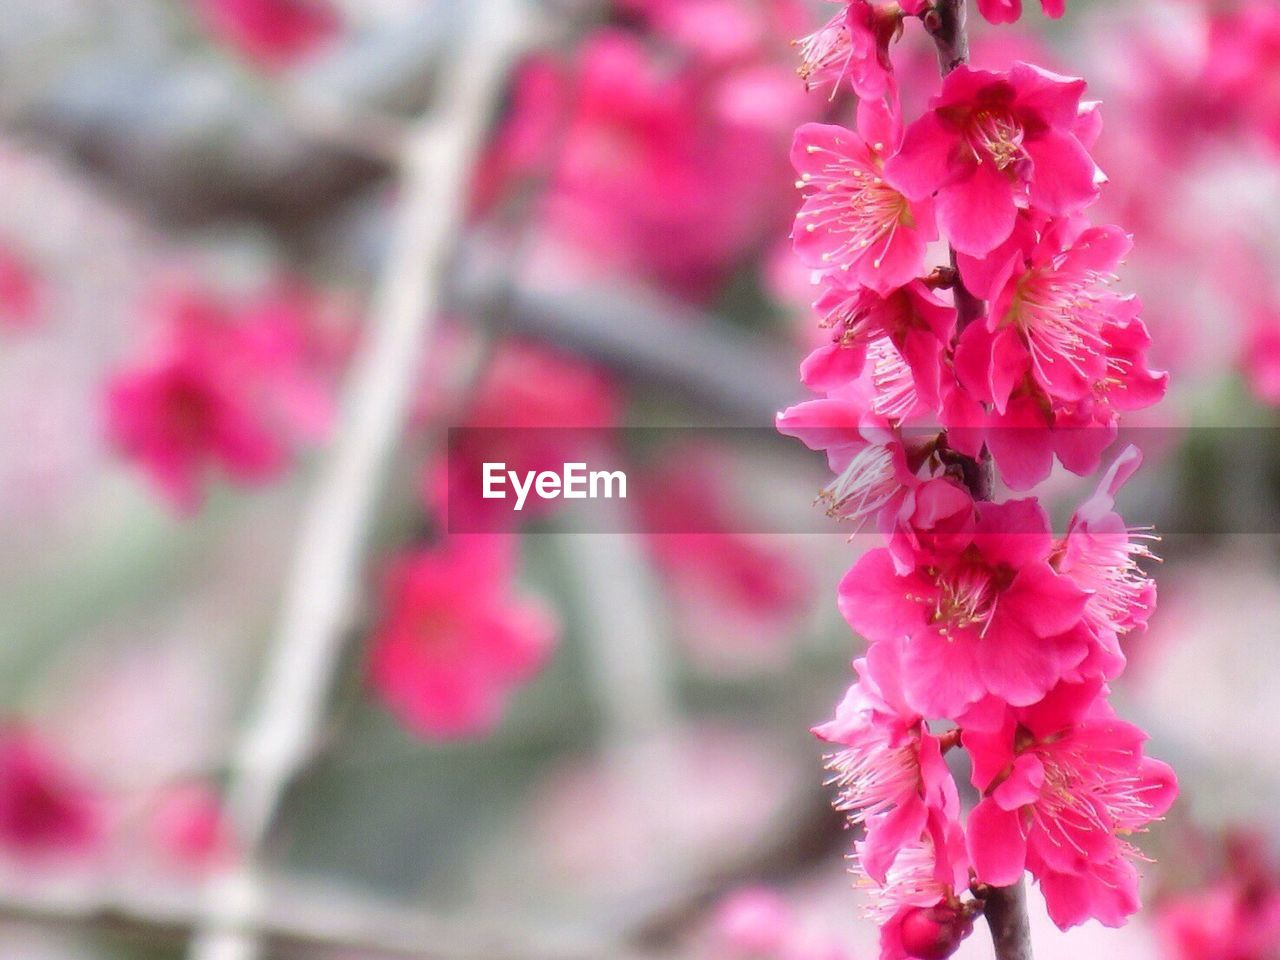 flower, fragility, growth, pink color, beauty in nature, petal, nature, freshness, day, blossom, no people, outdoors, springtime, close-up, flower head, focus on foreground, blooming, plum blossom, plant, branch, tree